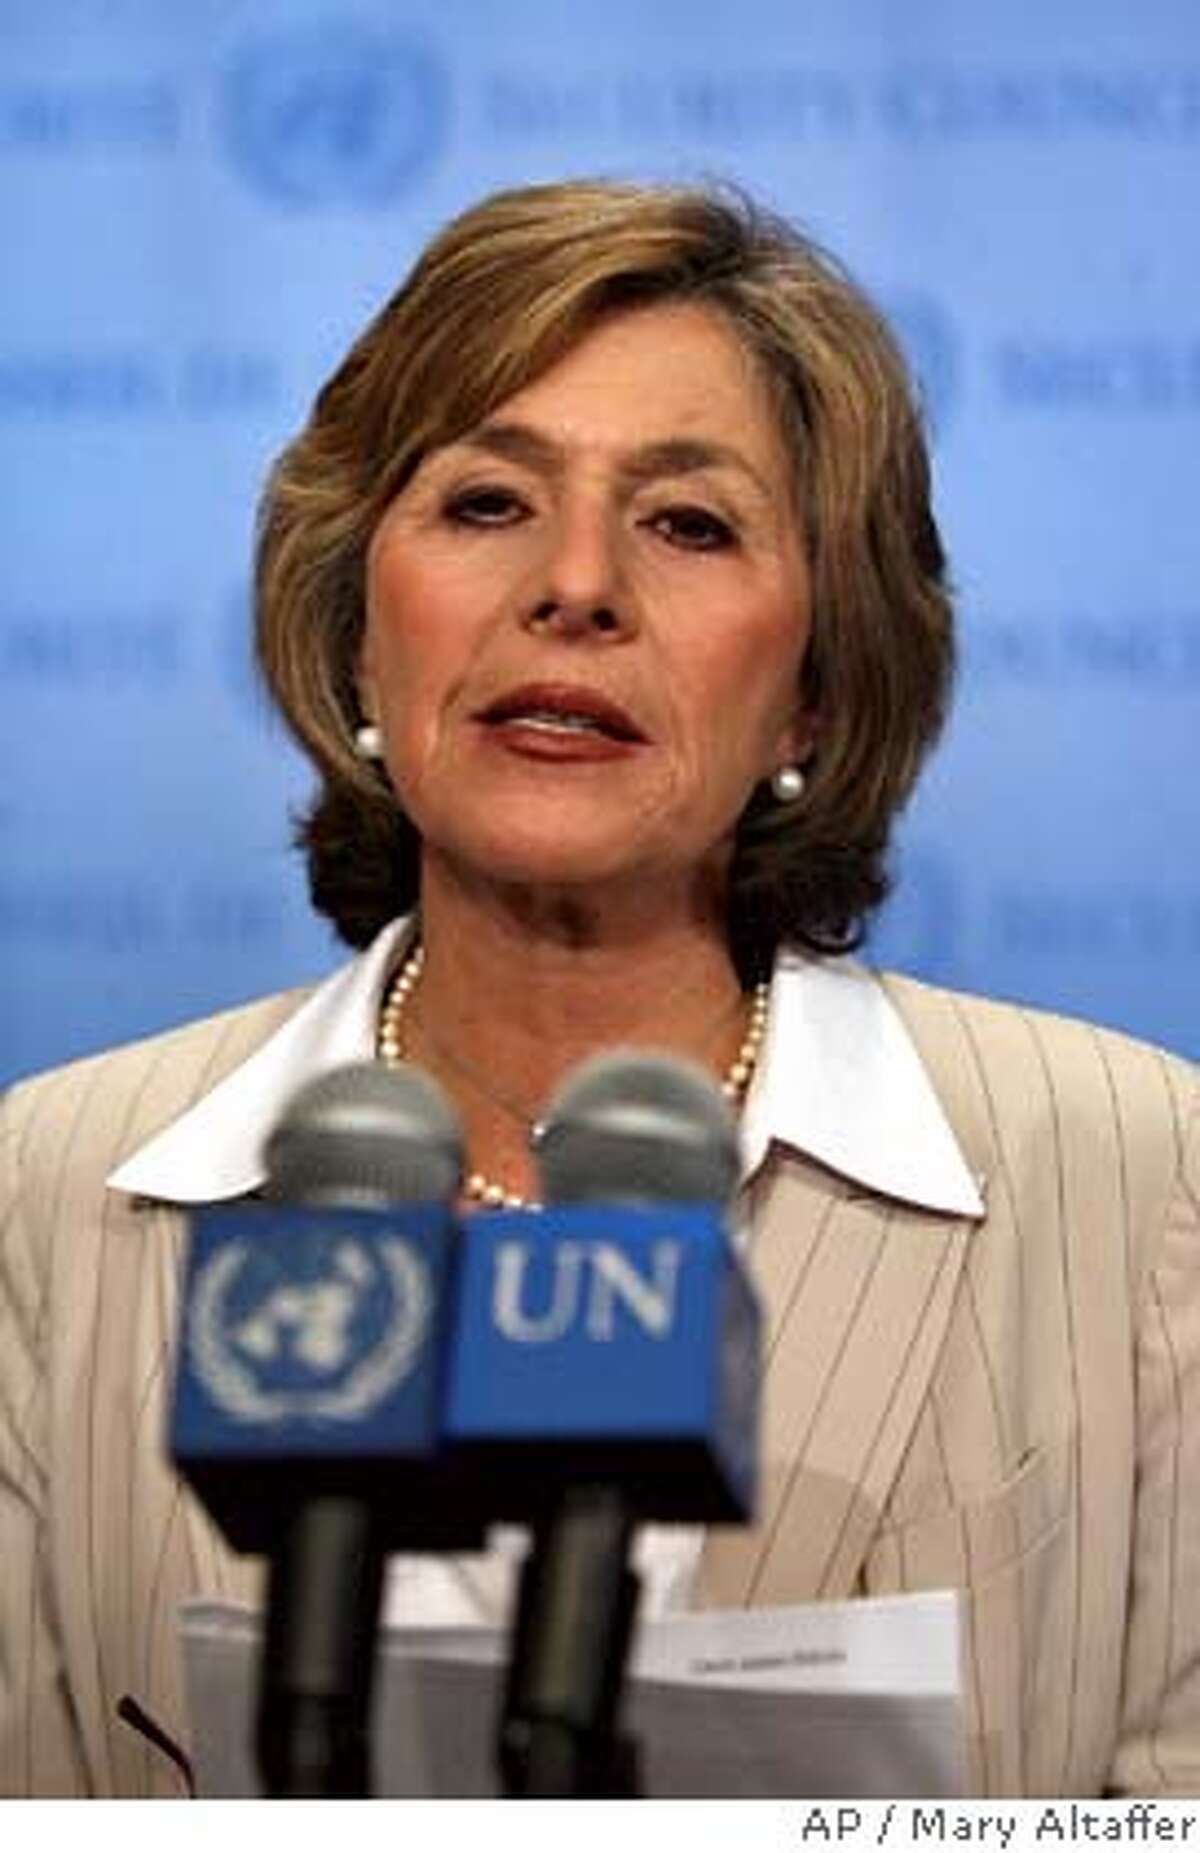 Sen. Barbara Boxer, D-Calif, addresses members of the media about the situation in Darfur at United Nations headquarters, Monday, Sept. 18, 2006. (AP Photo/Mary Altaffer)